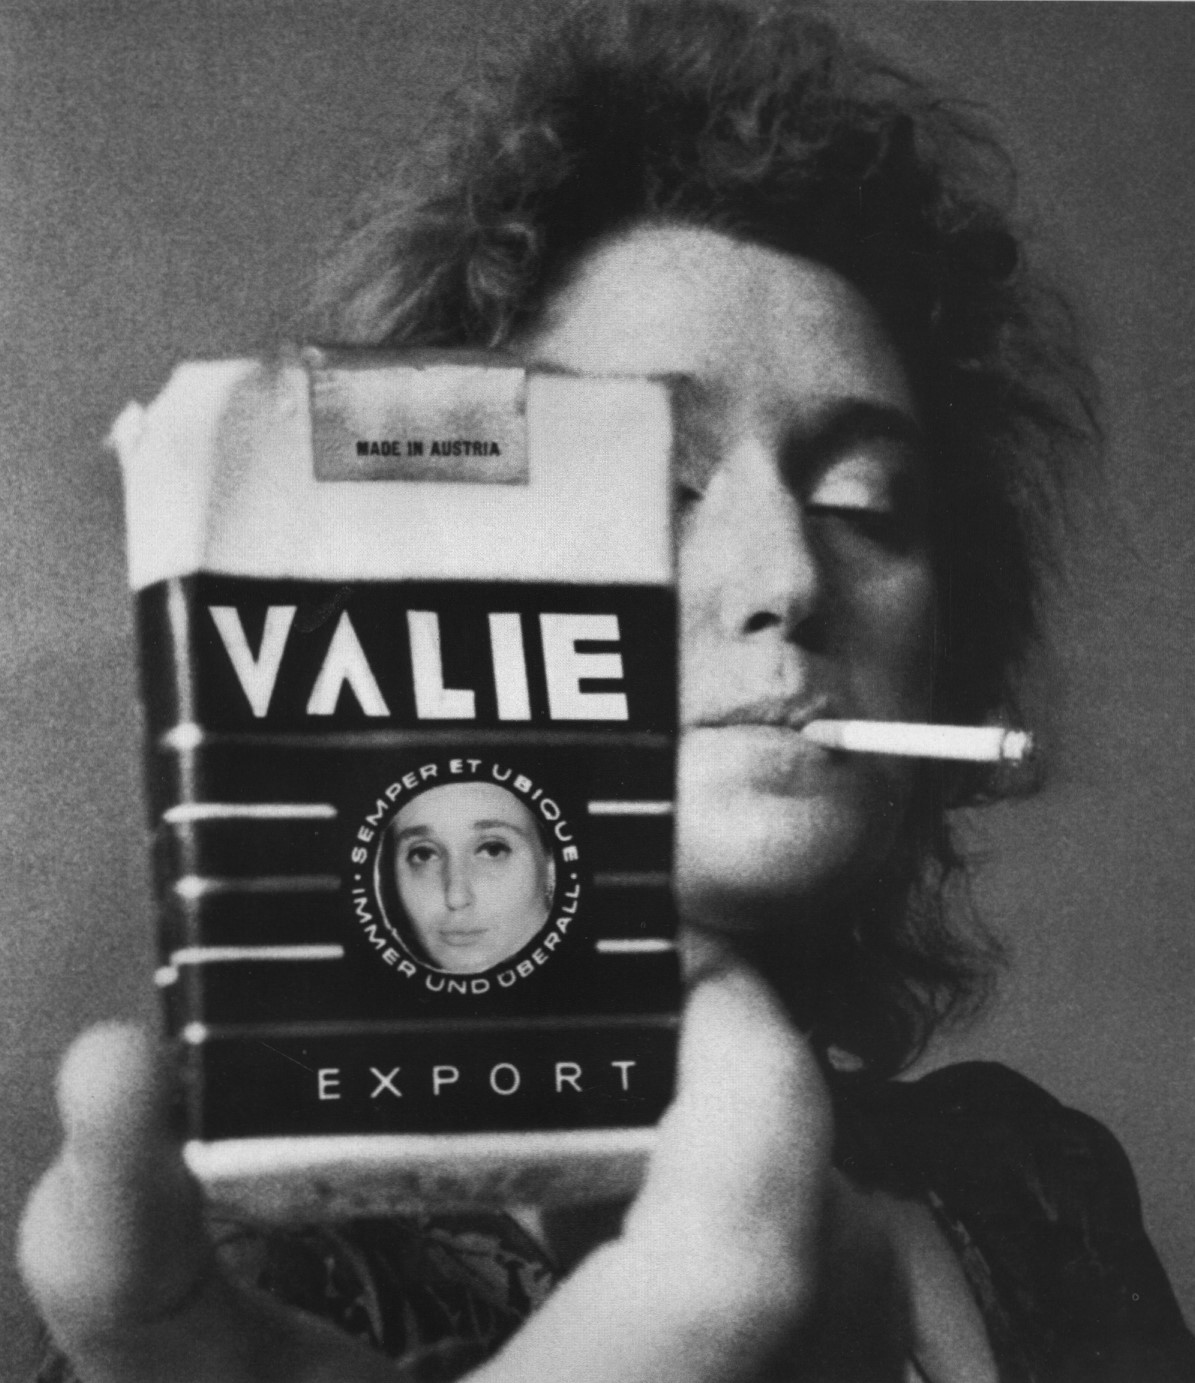 VALIE EXPORT | SELF PORTRAIT: TRANSFER IDENTITY | 1969/70